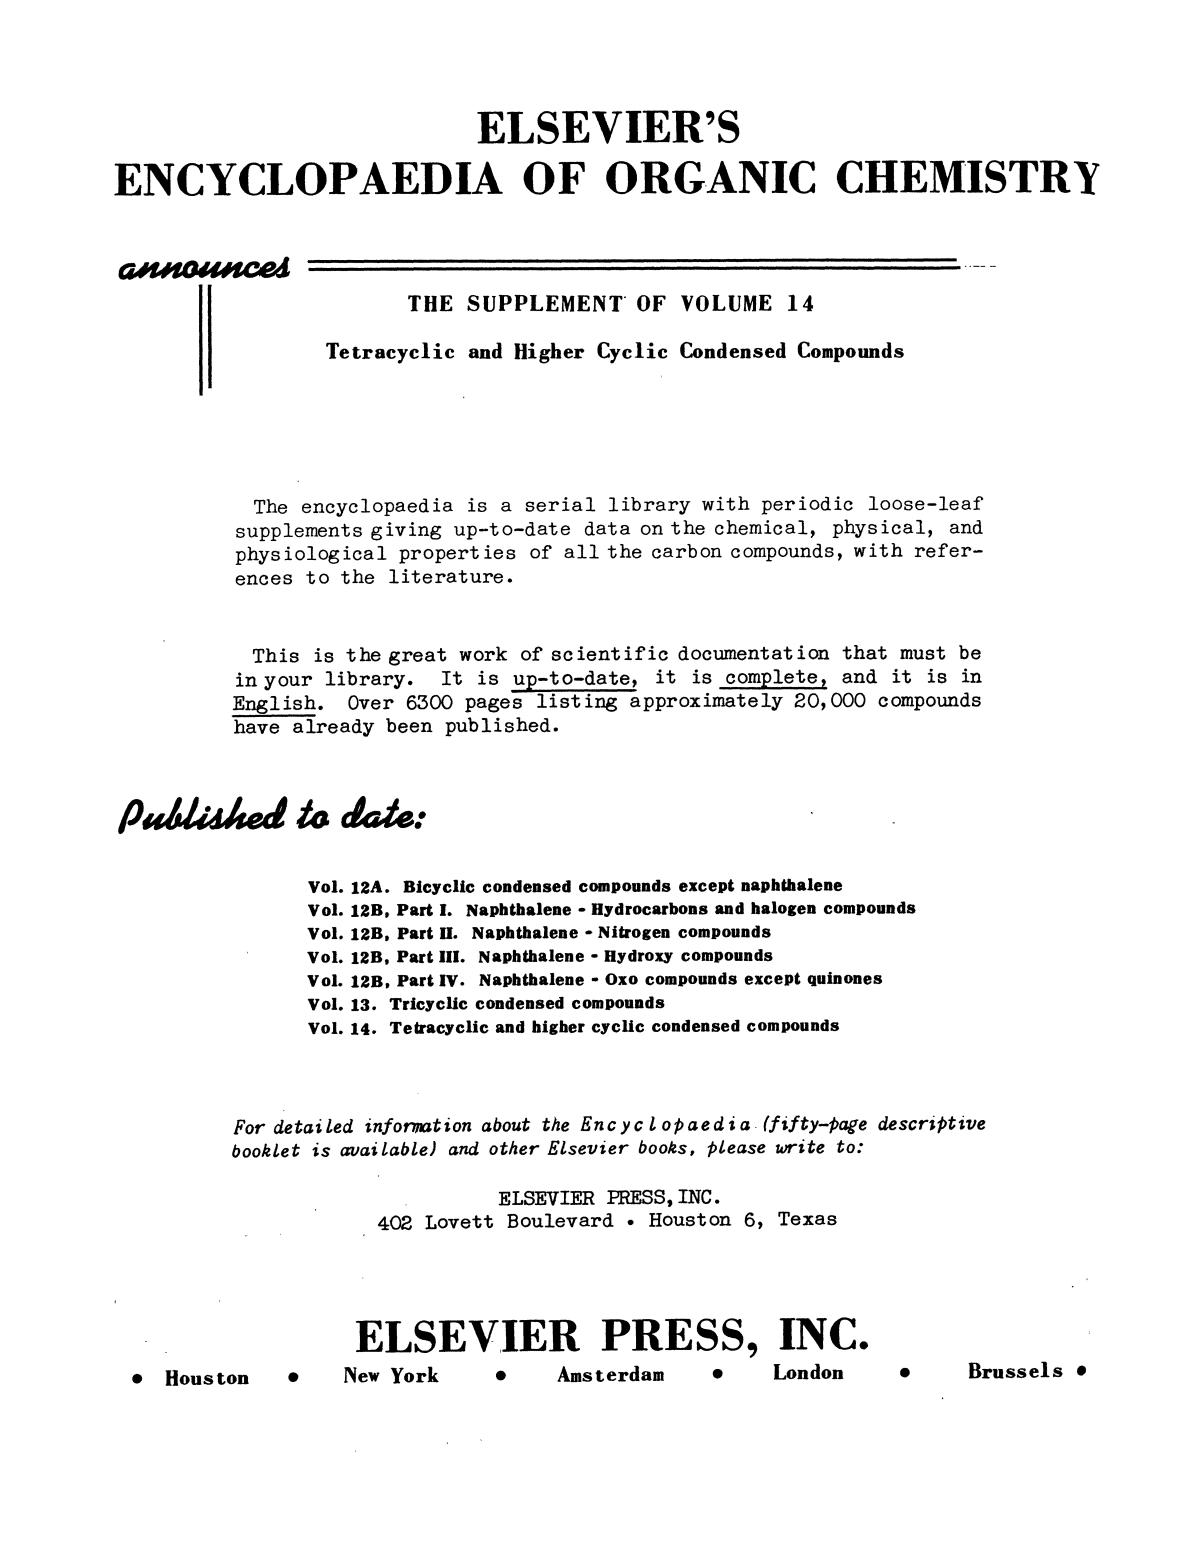 Chemical Literature, Volume 3, Number 3, Fall 1951                                                                                                      4